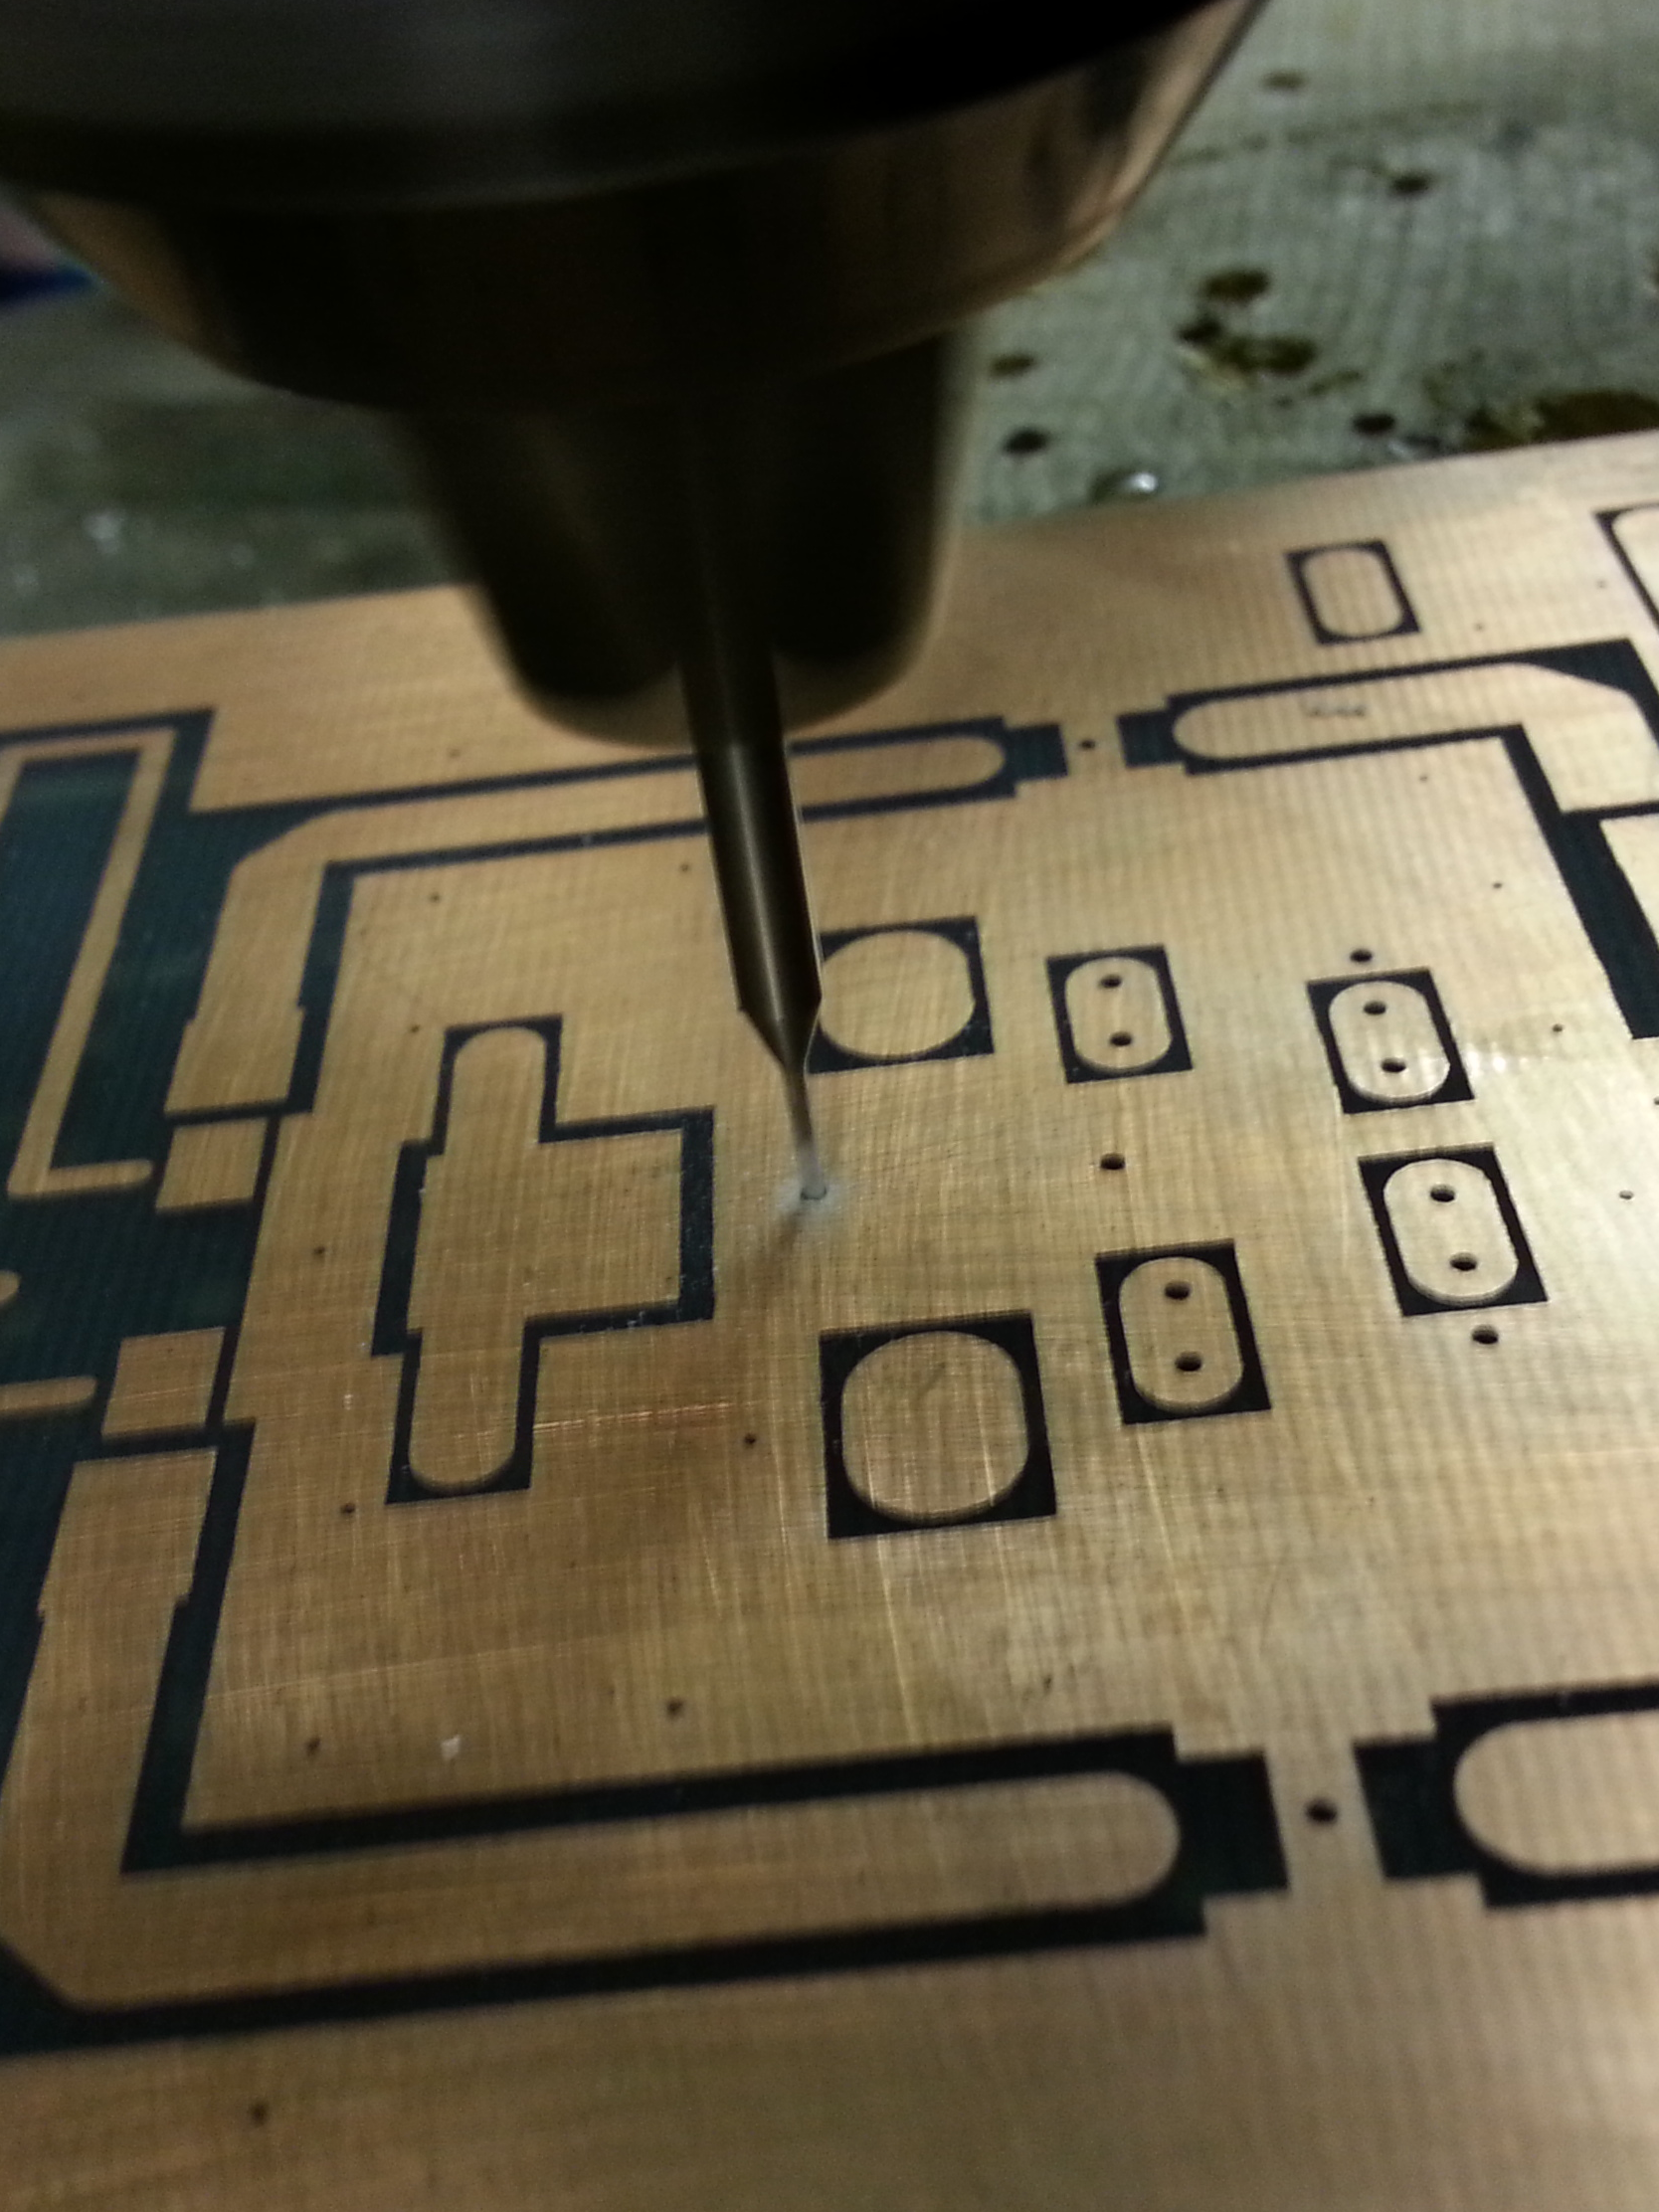 Making the PCB - Drilling